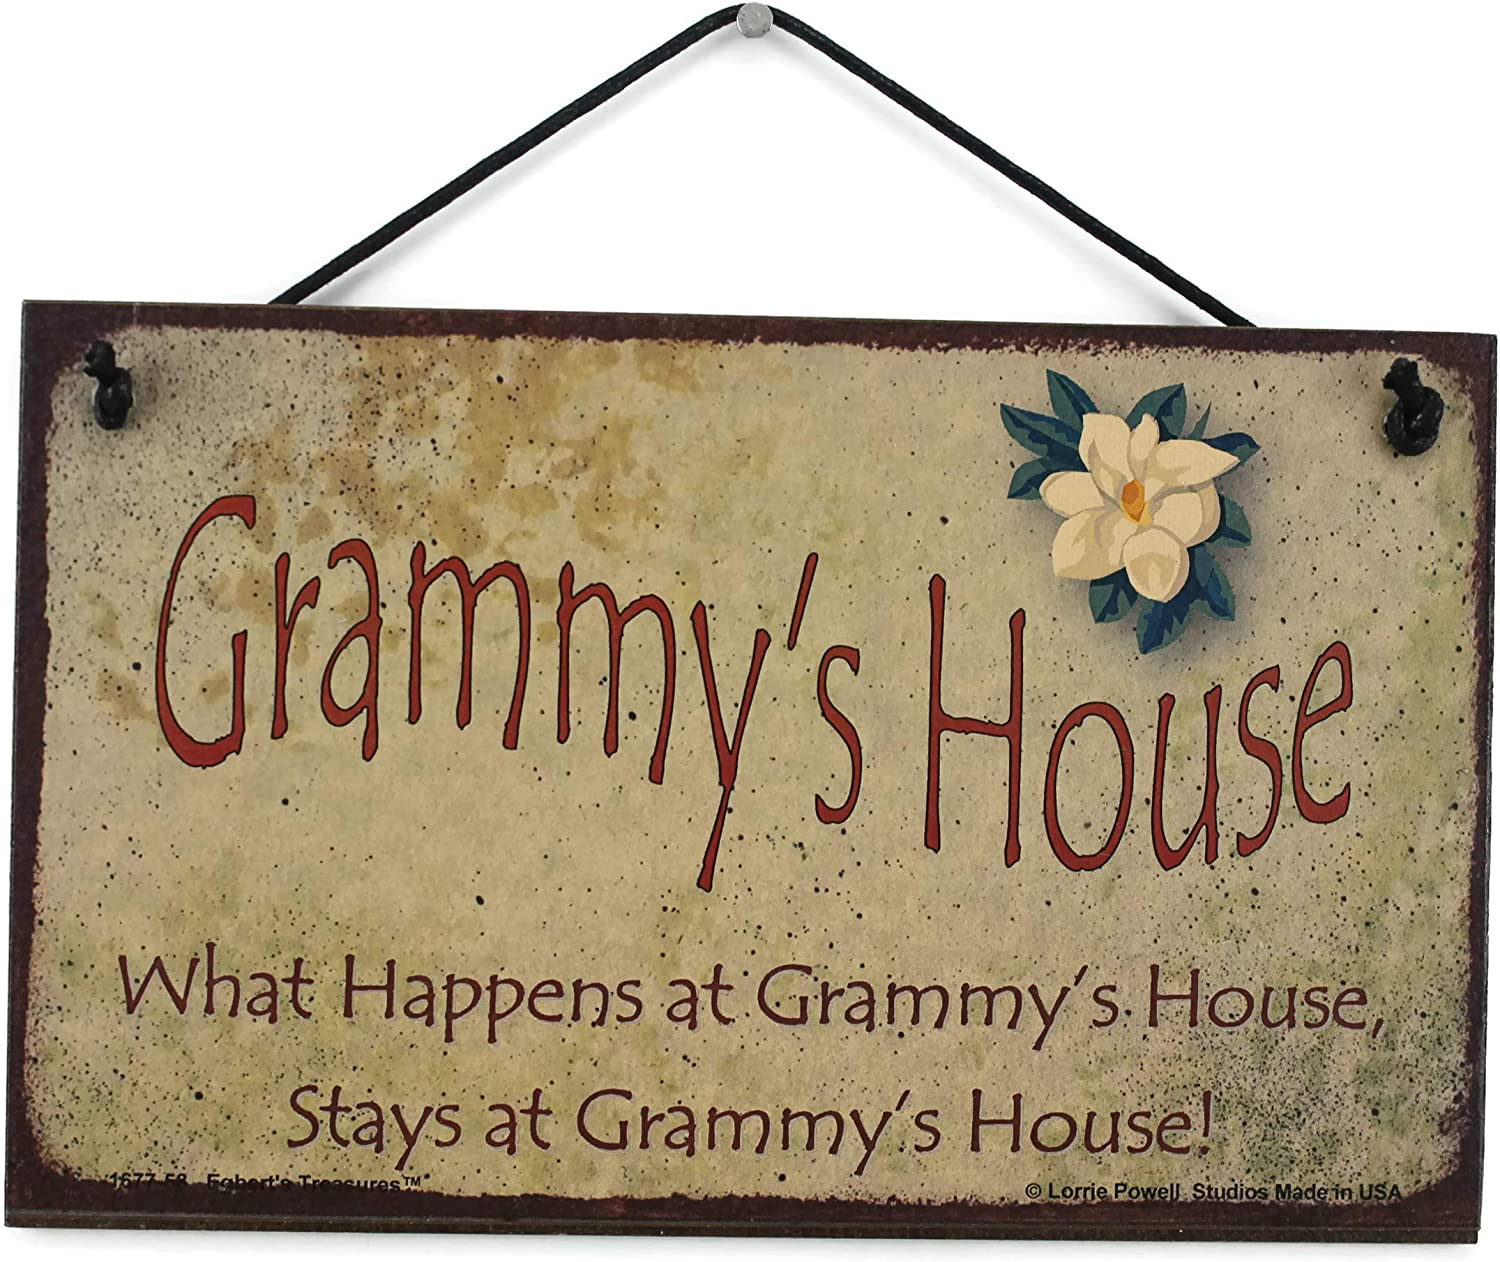 """5x8 Vintage Style Sign with Magnolia Flower Saying, """"Grammy's House What Happens at Grammy's House, Stays at Grammy's House!"""" Decorative Fun Universal Household Family Signs for Grandma (5x8)"""